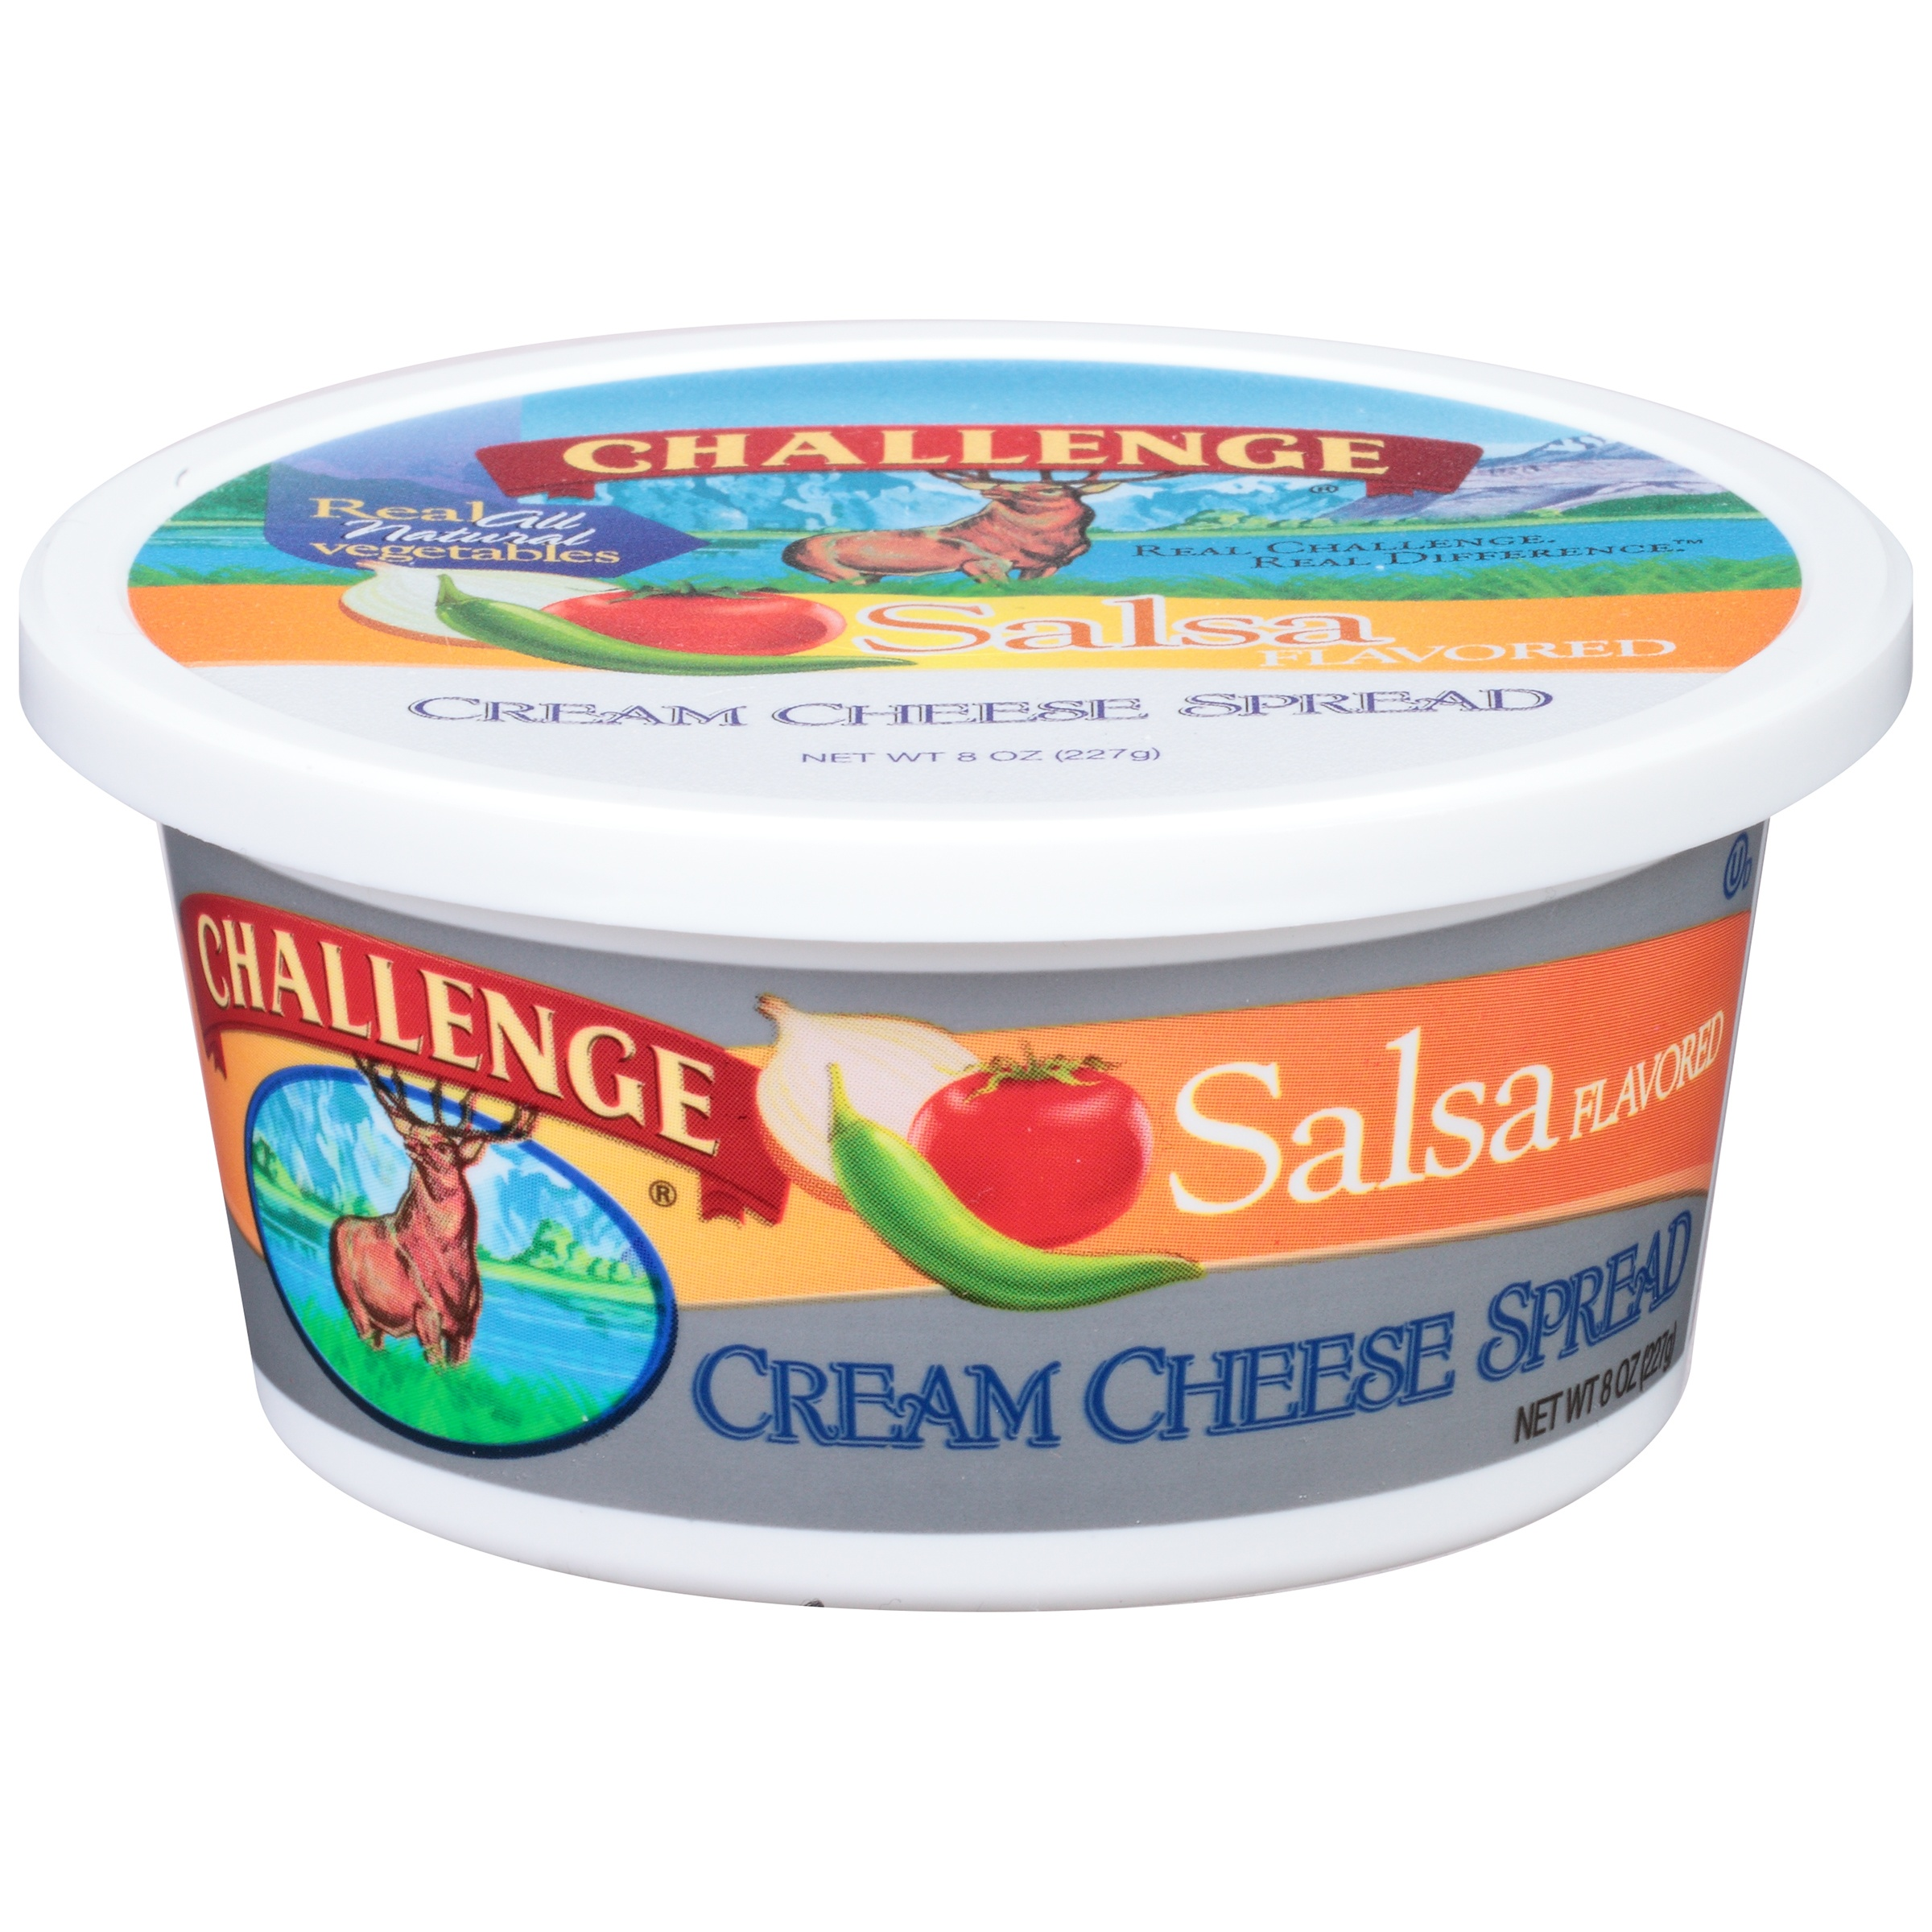 Challenge® Salsa Flavored Cream Cheese Spread 8 oz. Tub